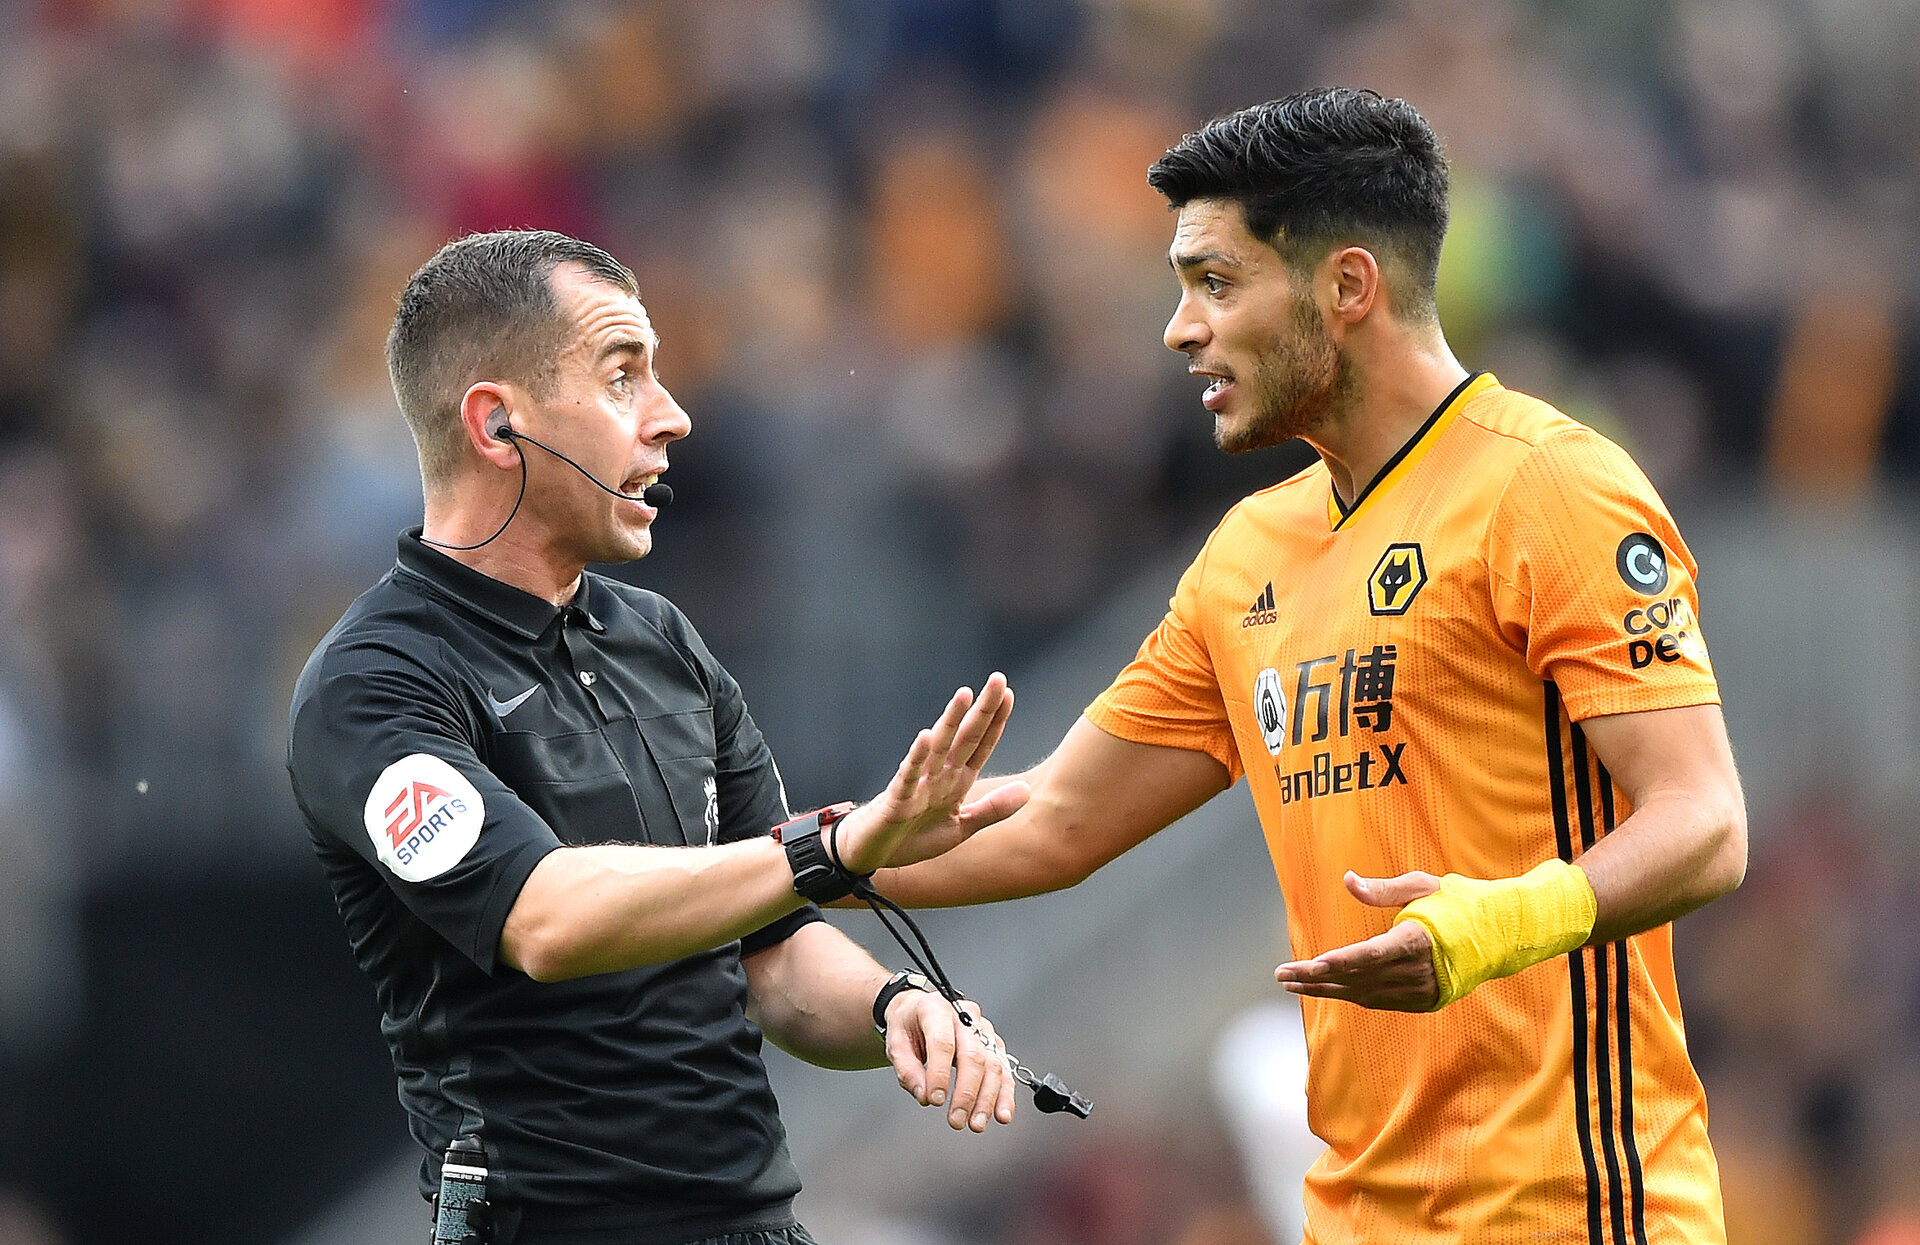 WOLVERHAMPTON, ENGLAND - OCTOBER 19: Raul Jimenez of Wolverhampton Wanderers reacts to Match Referee Peter Bankes after scoring his team's first goal which is then disallowed during the Premier League match between Wolverhampton Wanderers and Southampton FC at Molineux on October 19, 2019 in Wolverhampton, United Kingdom. (Photo by Nathan Stirk/Getty Images)